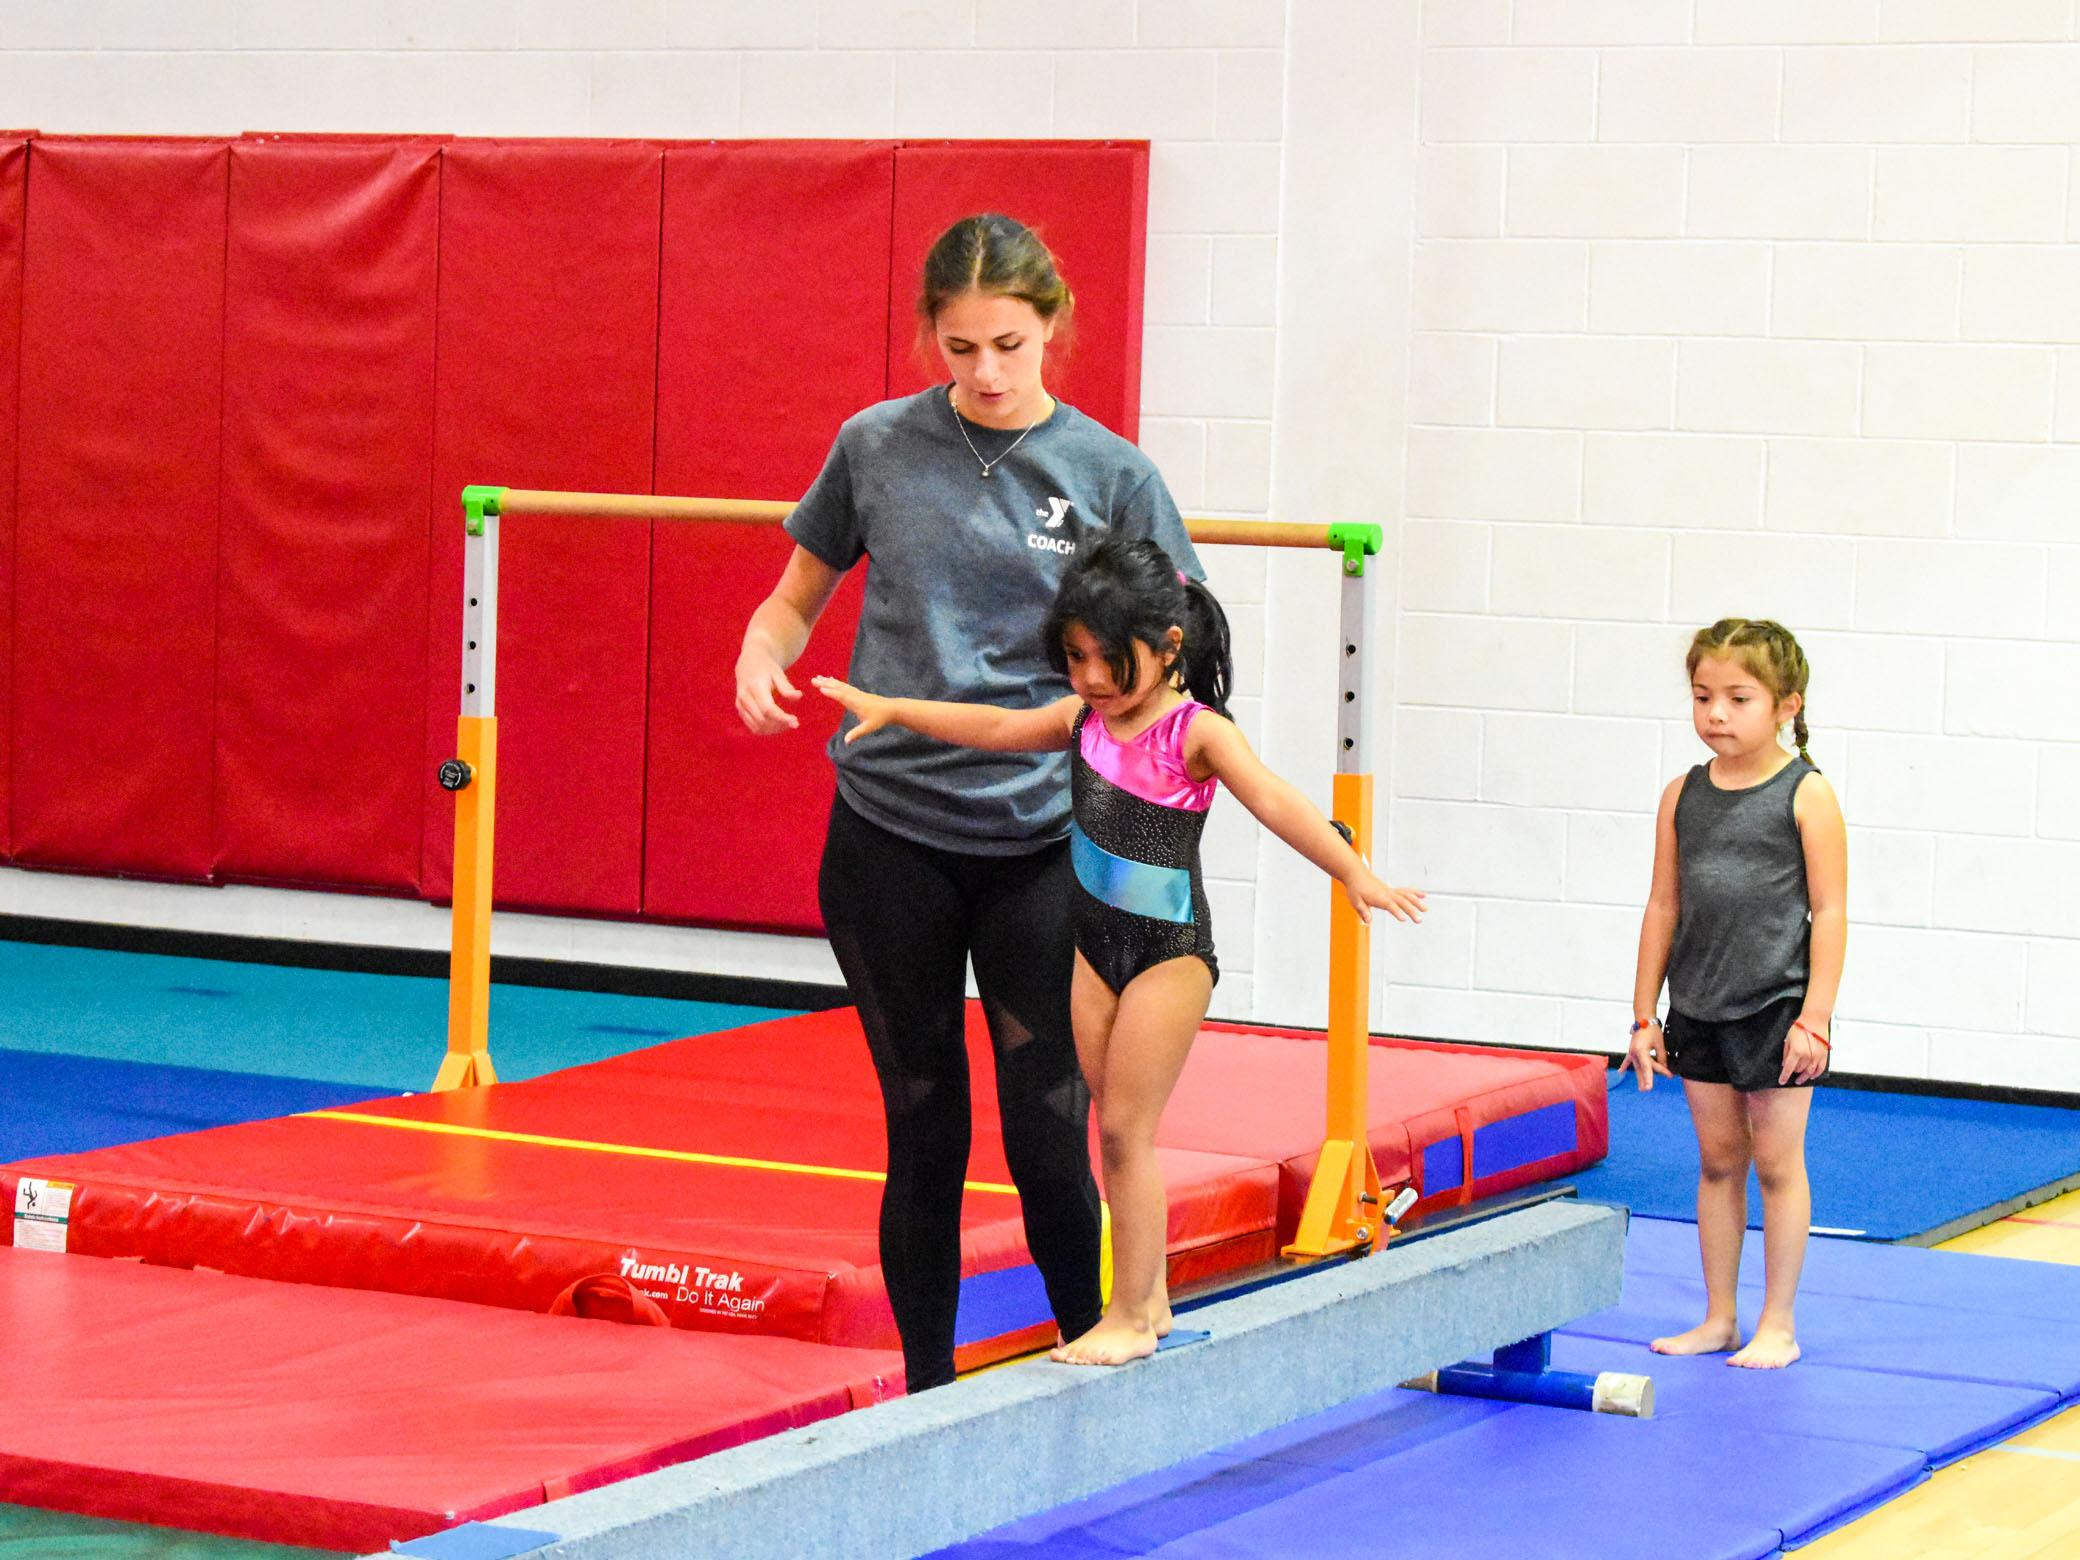 Instructor helps kids in youth gymnastics class